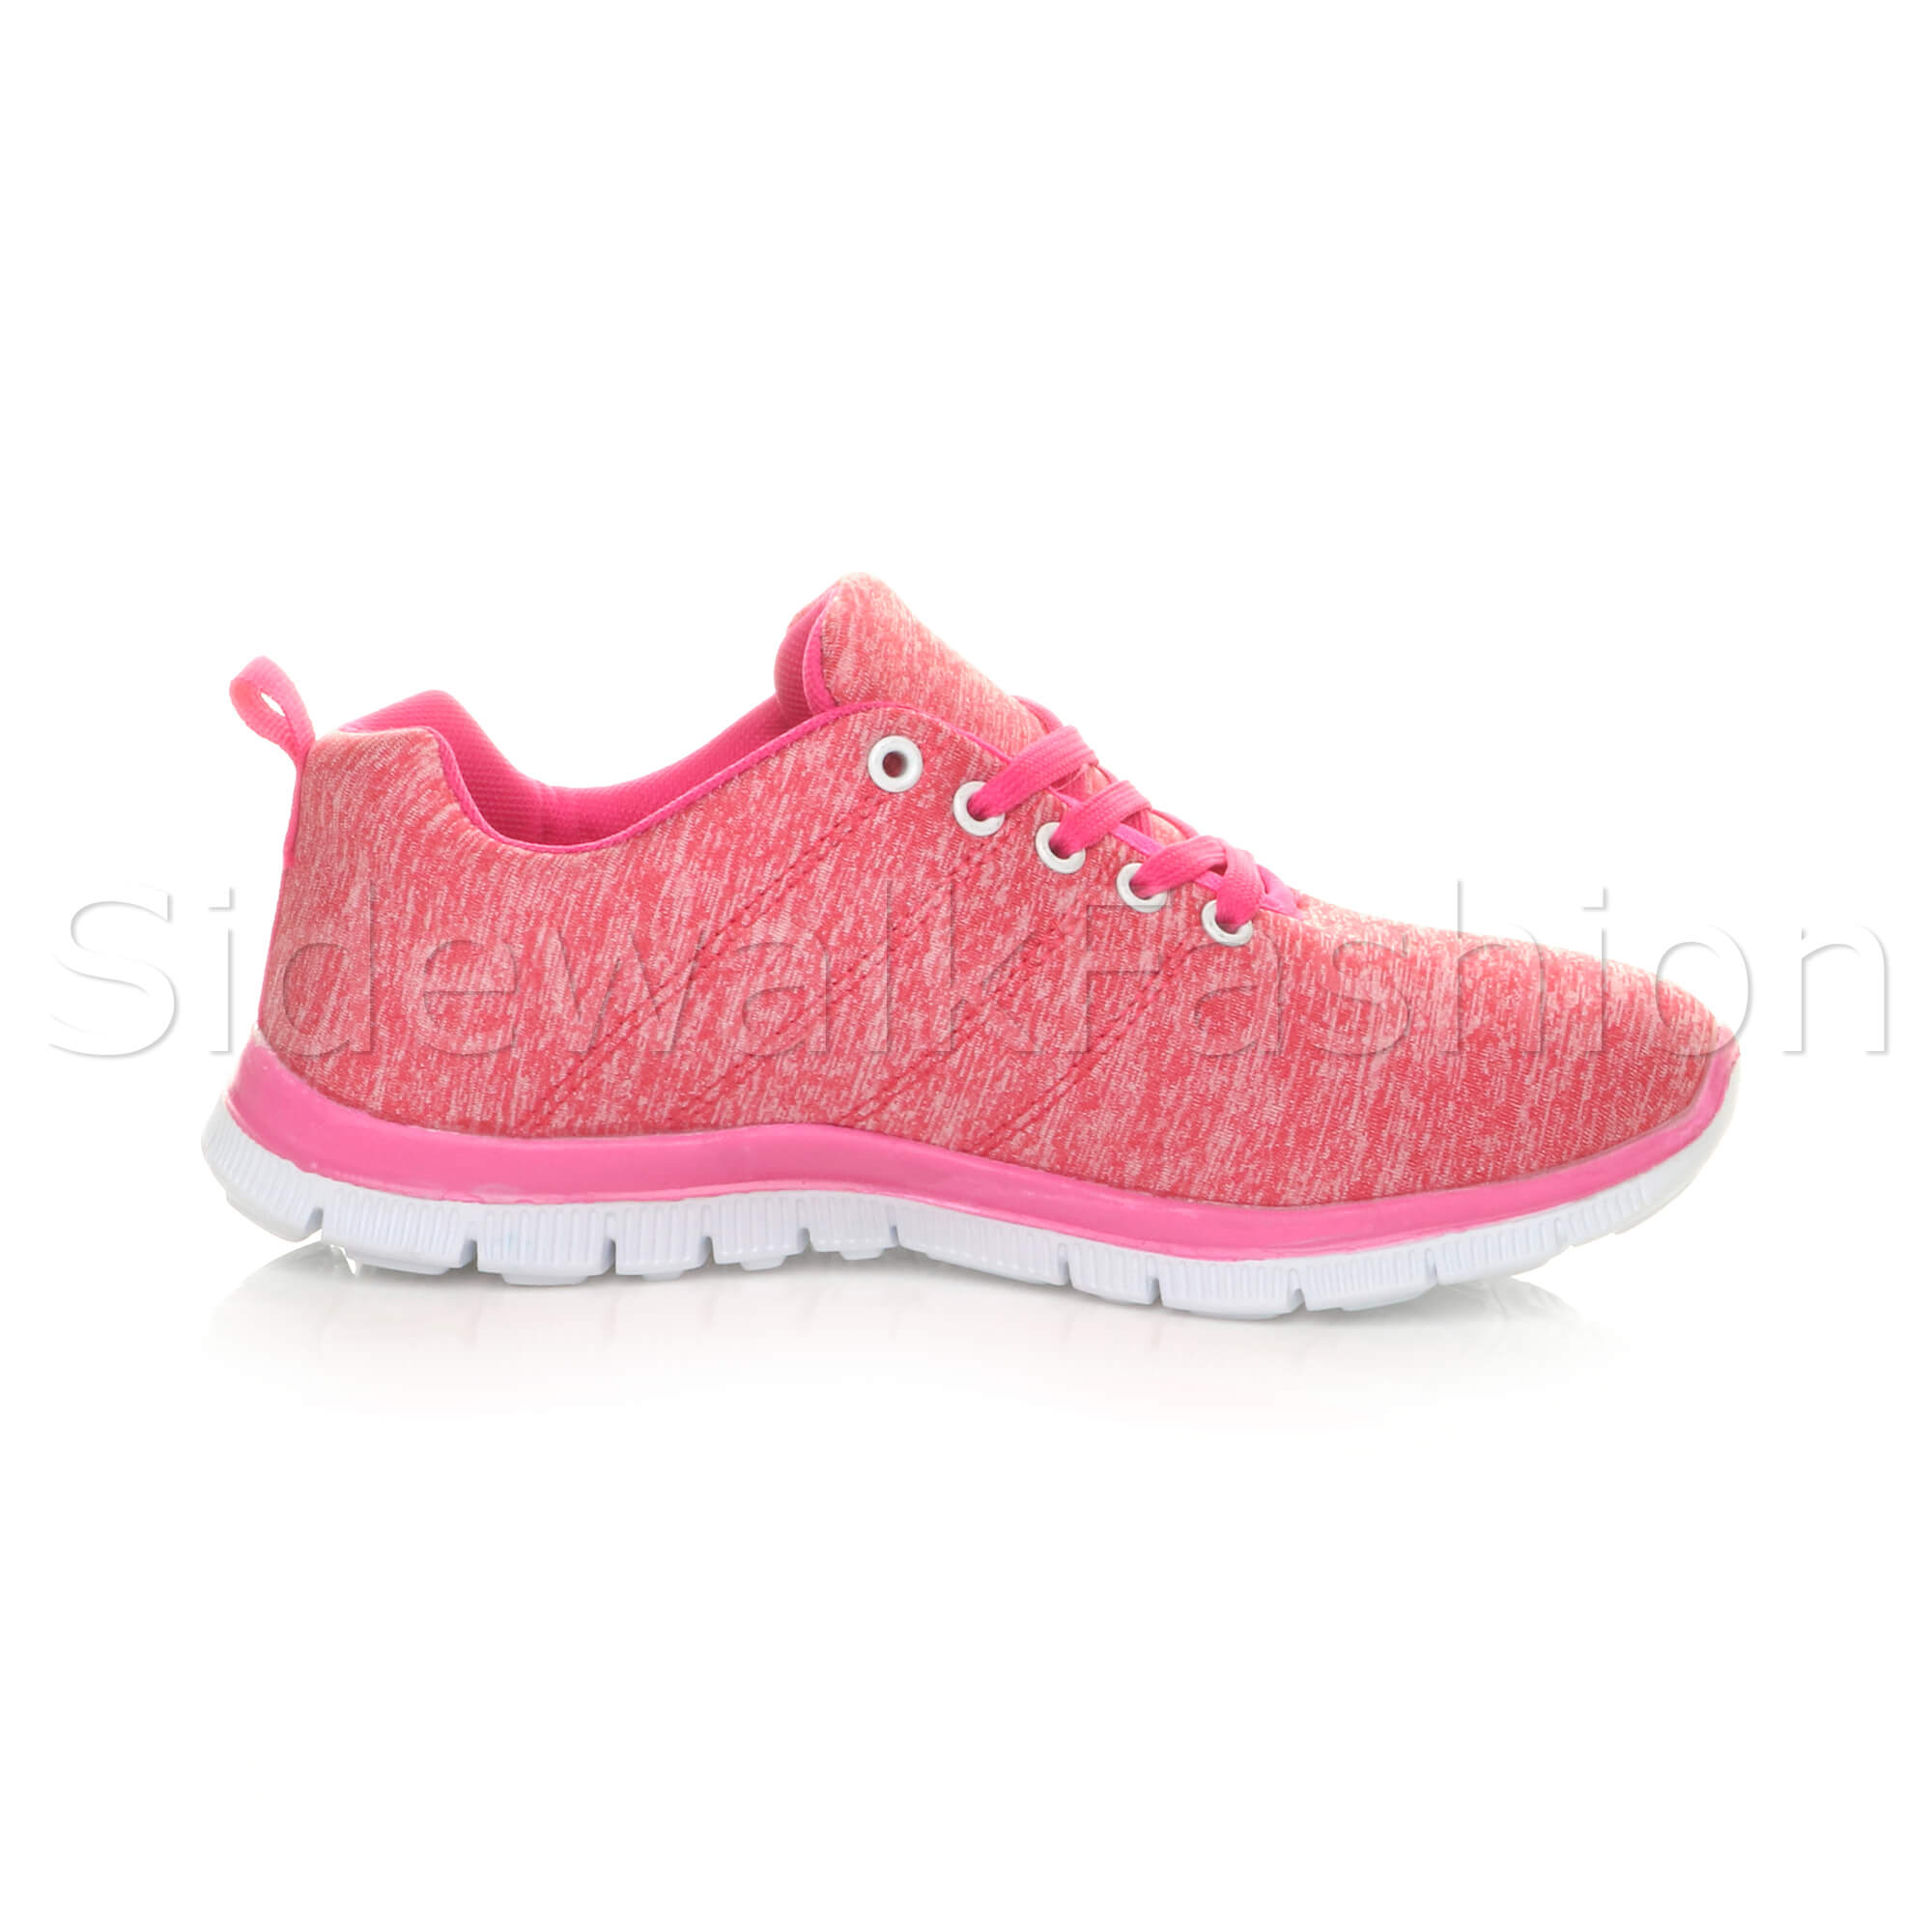 Womens-ladies-comfort-memory-foam-lace-up-trainers-activewear-sneakers-gym-shoes thumbnail 38